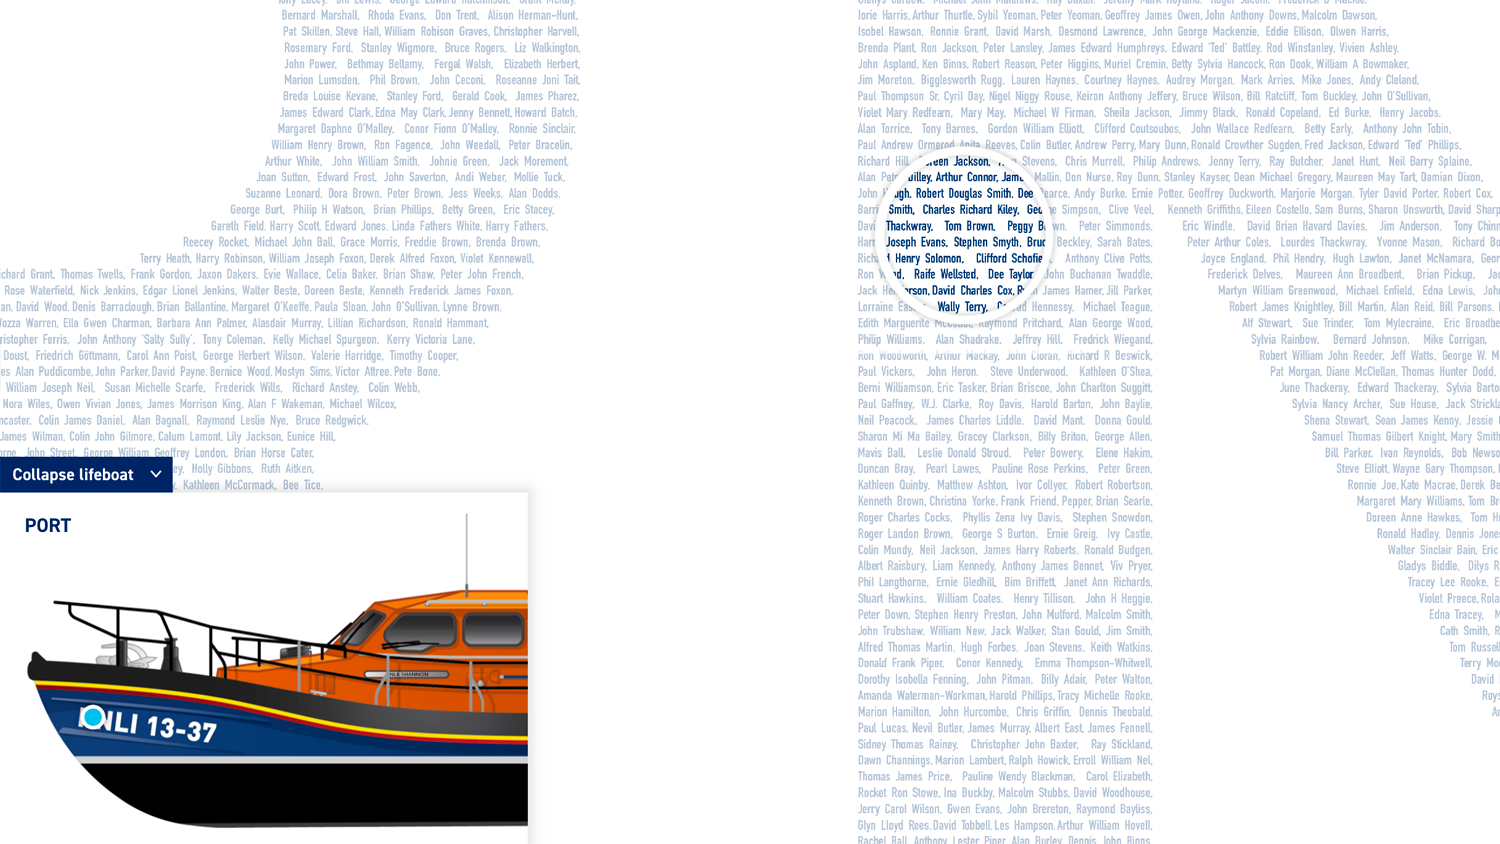 Screenshot of the searchable decal with boat and names